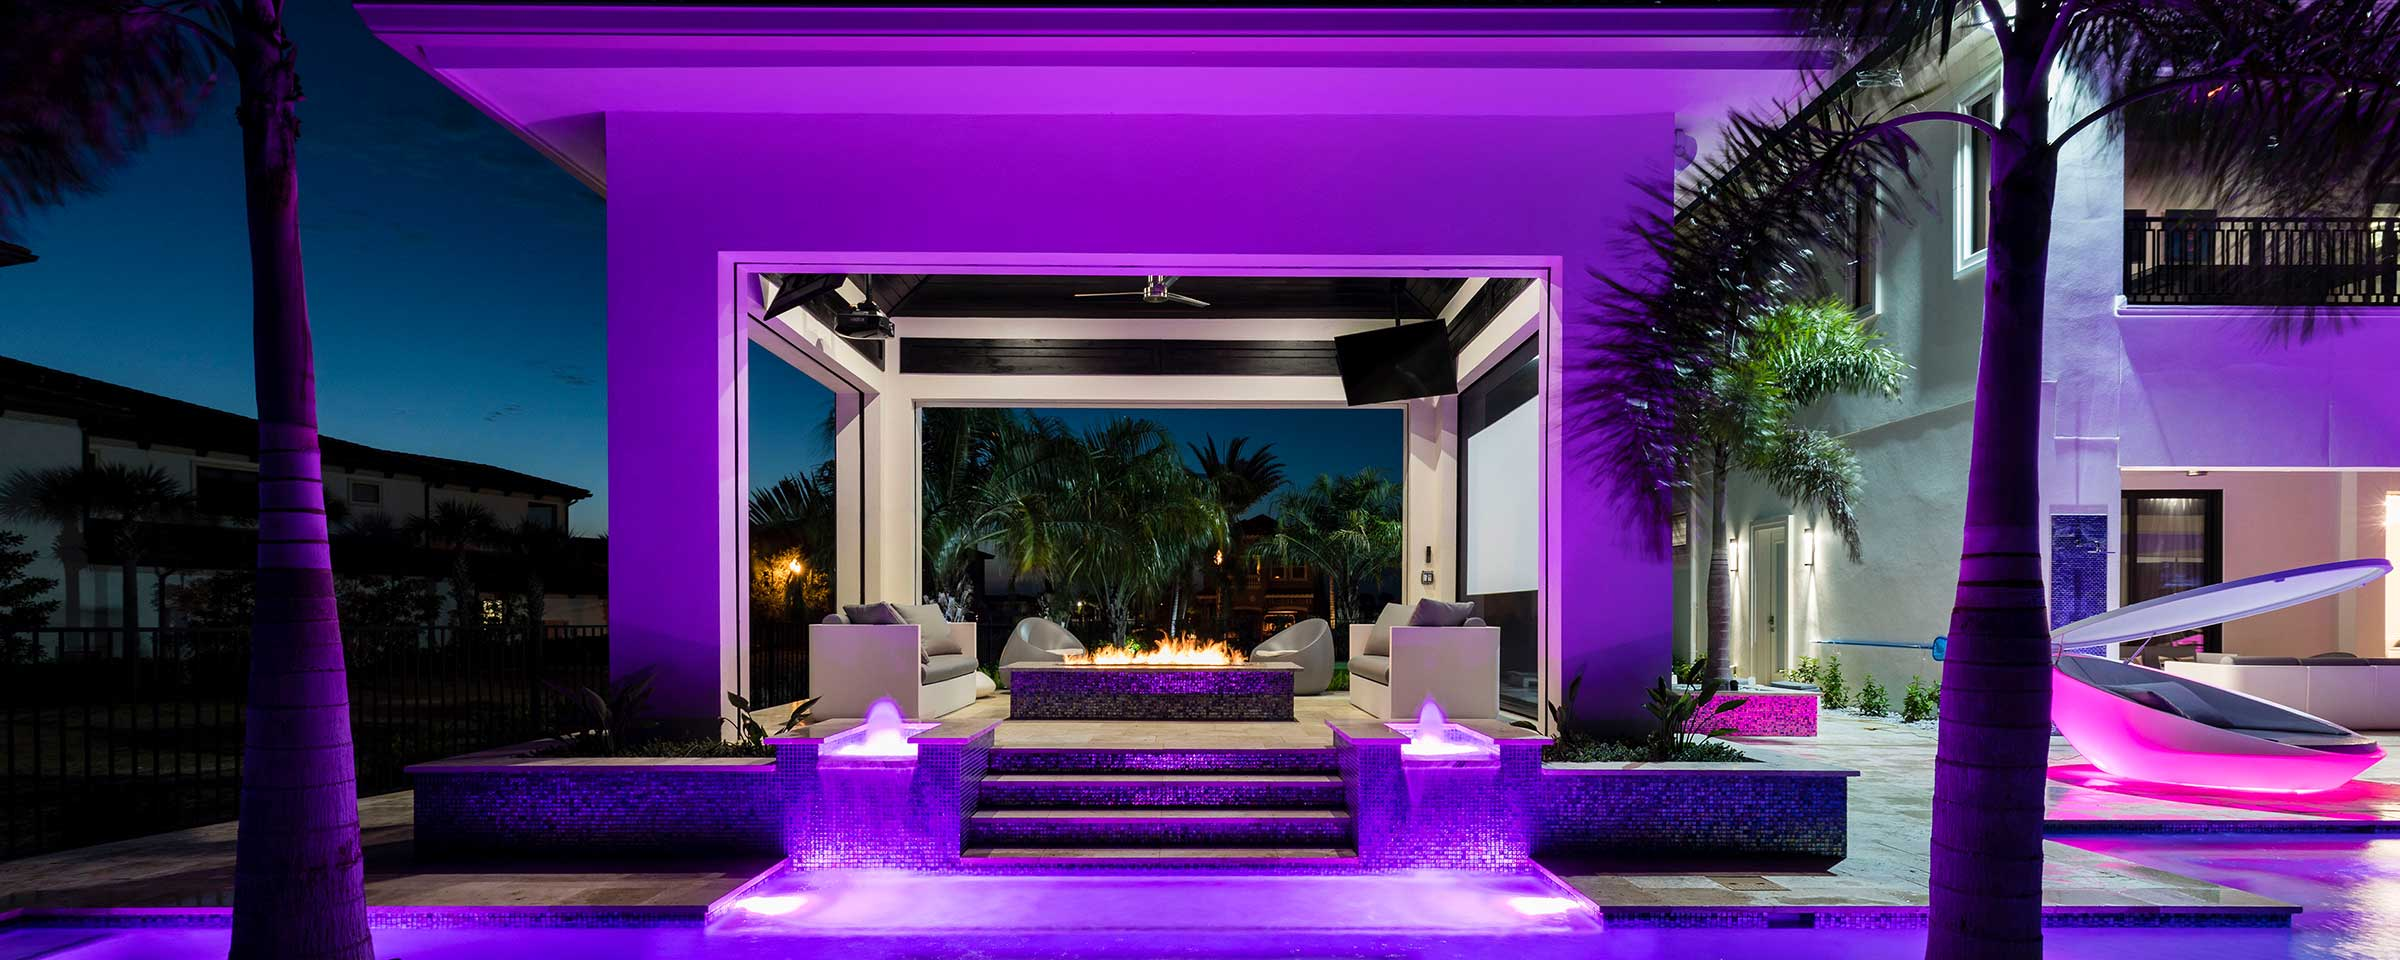 Purple pool lights on in the evening surrounding cabana with wood burning fire in the center.